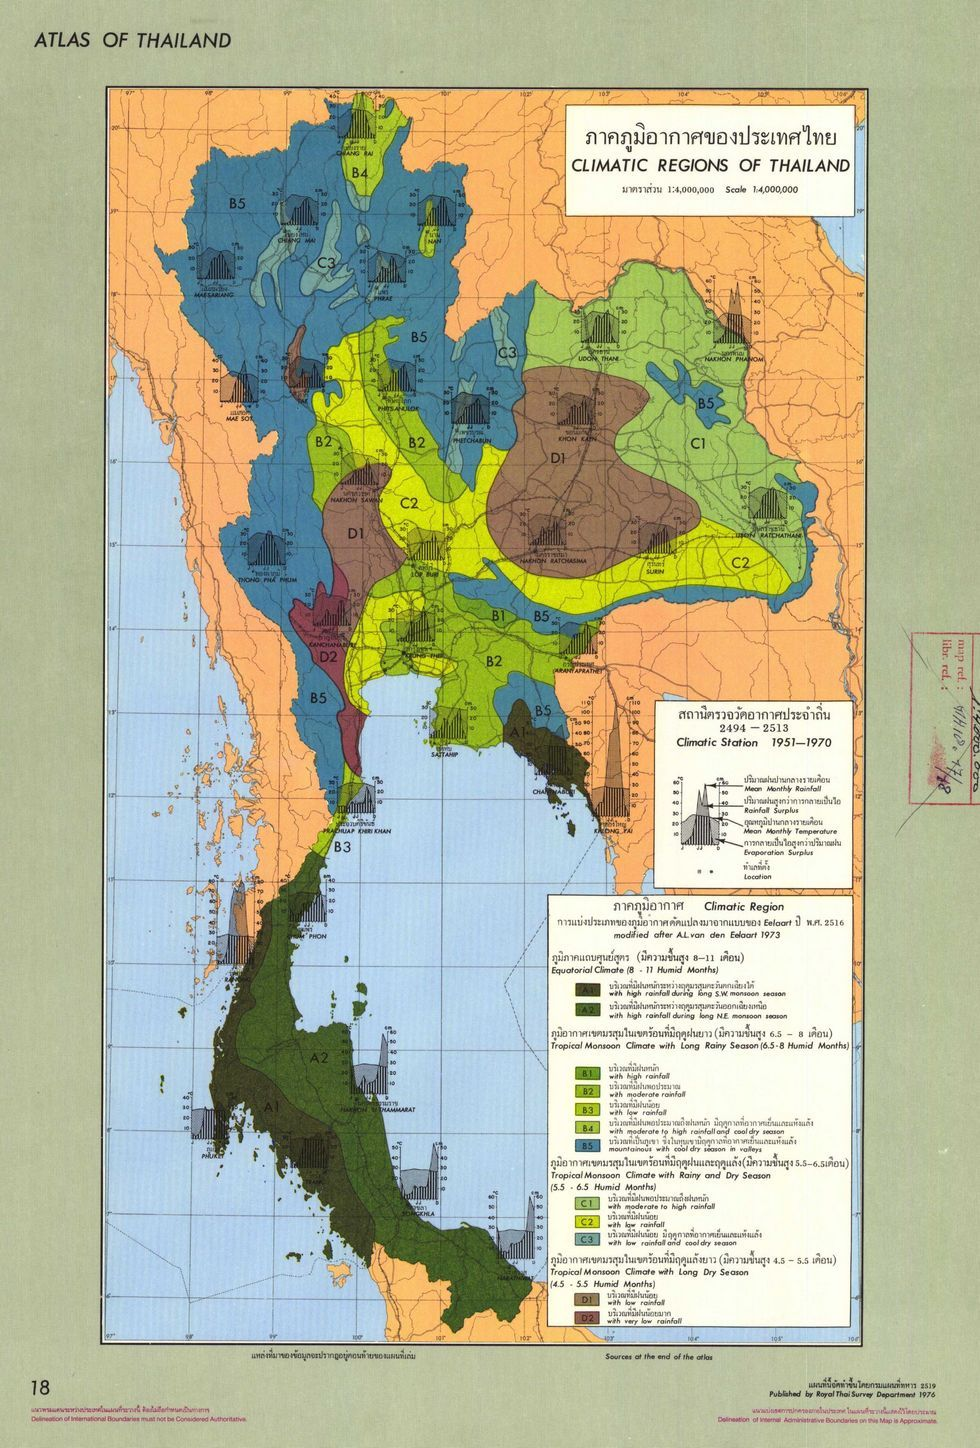 Climatic Regions of Thailand map | m a p s in 2019 | Thailand, Map, Asia